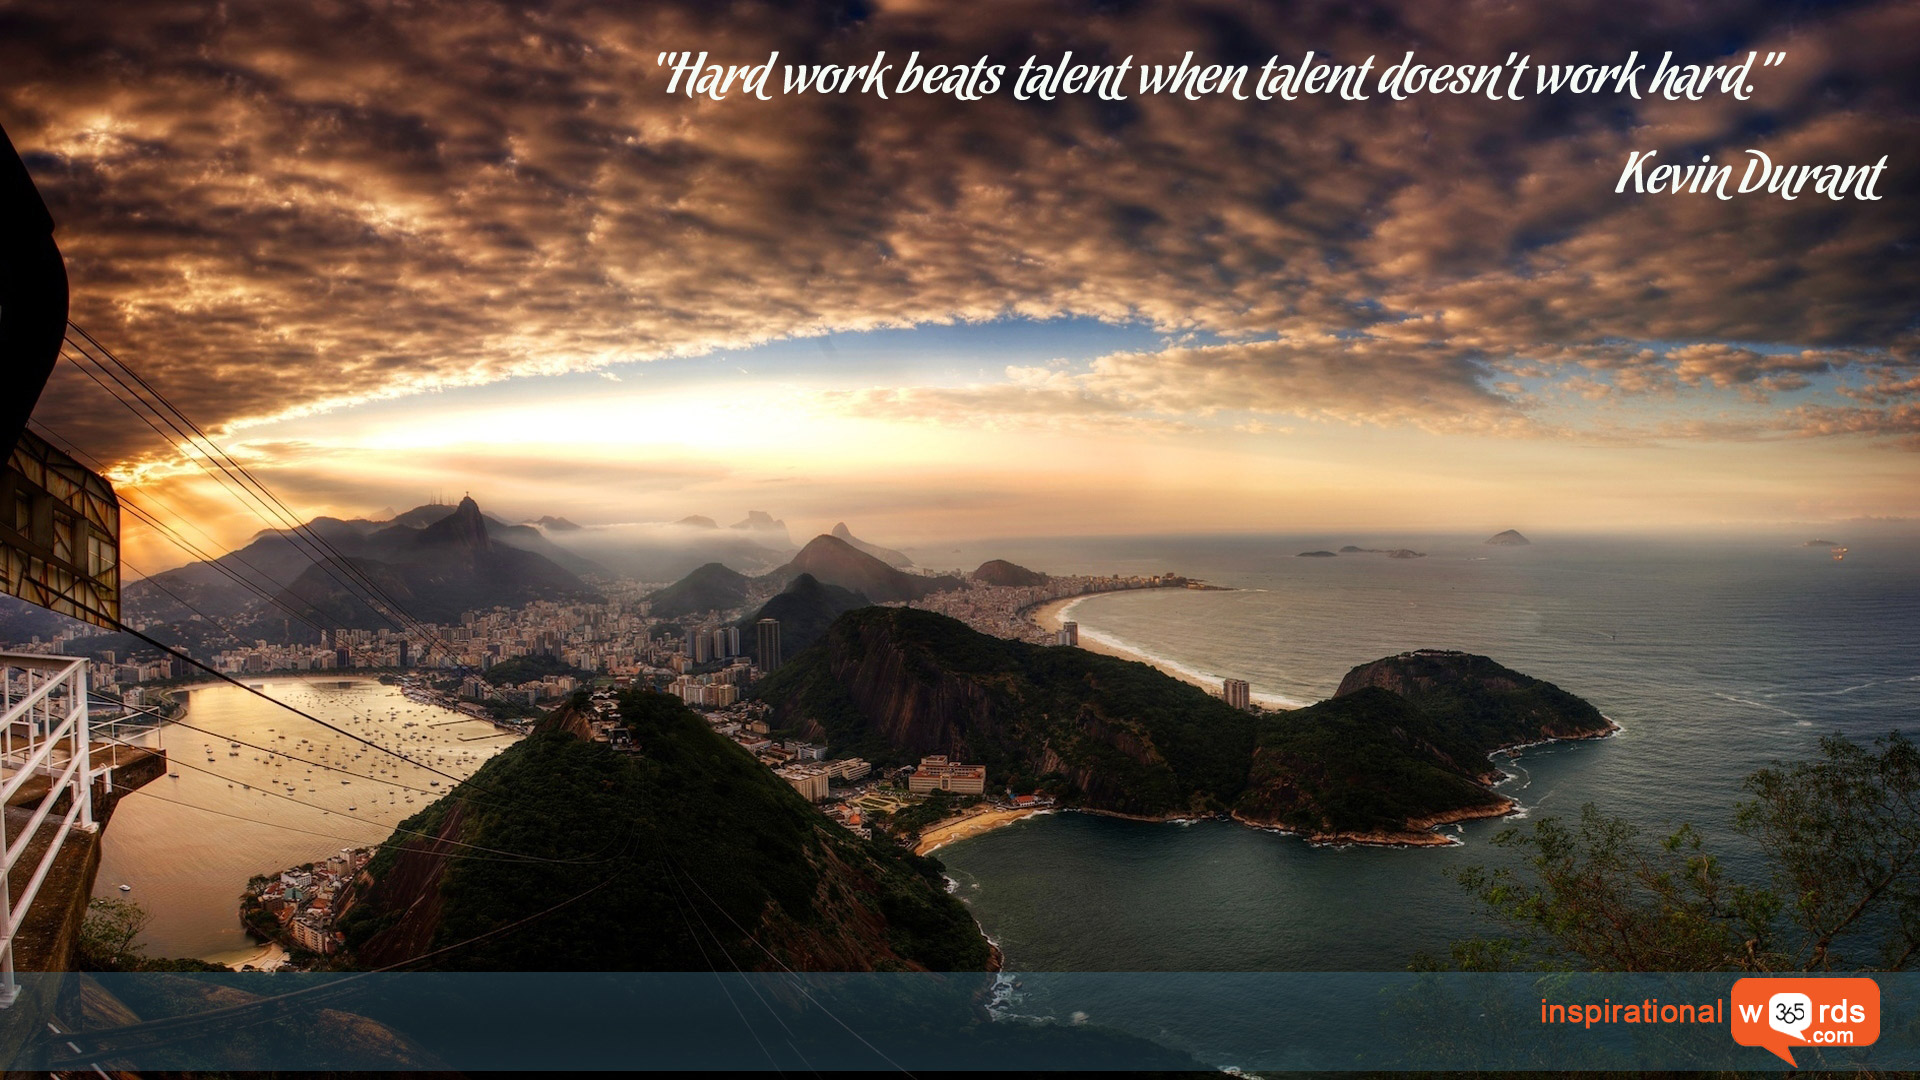 Inspirational Wallpaper Quote by Kevin Durant